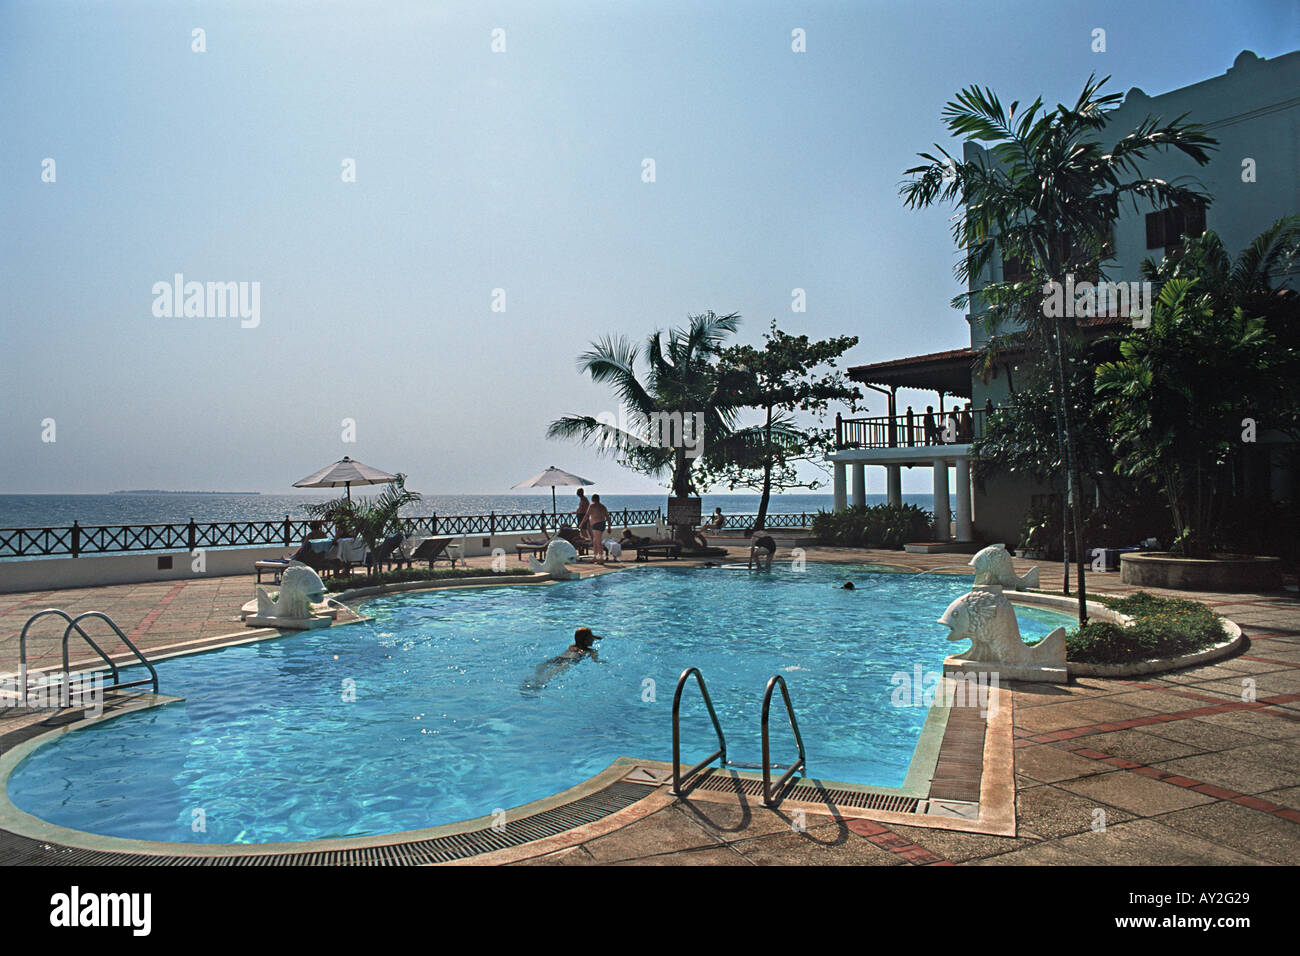 The swimming pool at the Serena a luxury hotel owned by the Aga Khan on Stone Town s historic waterfront Zanzibar Tanzania - Stock Image